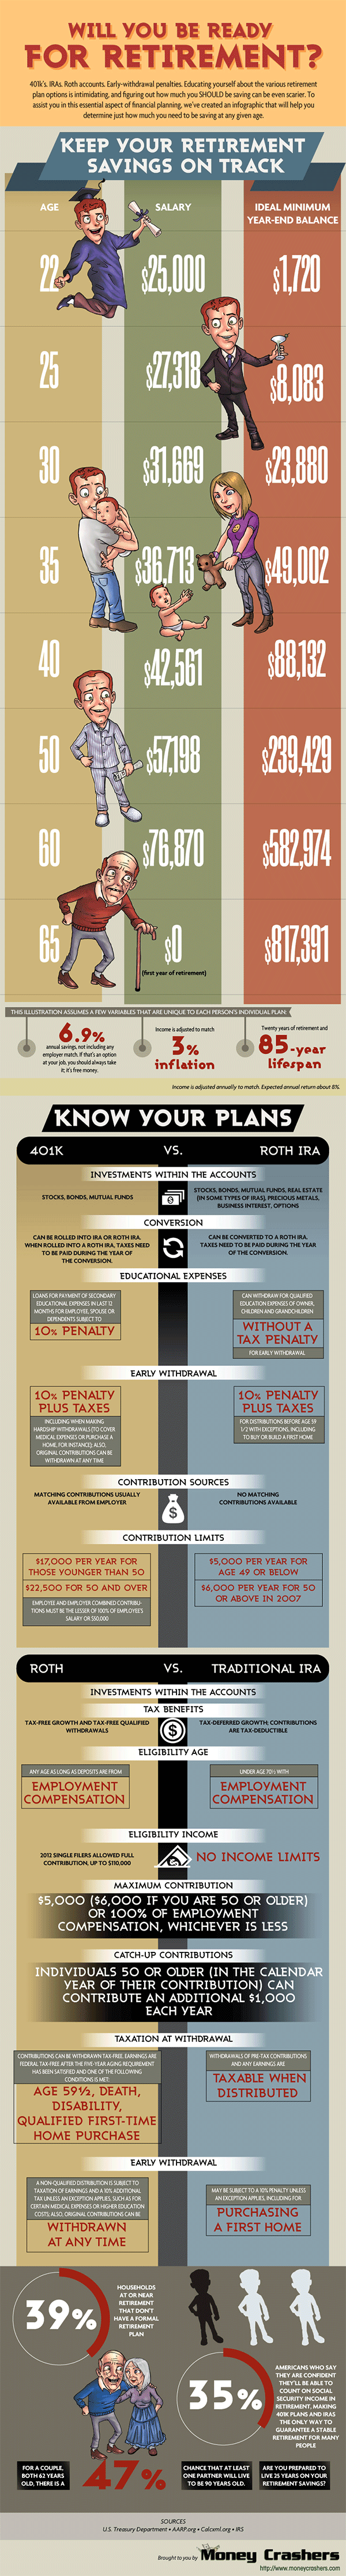 retirement savings infographic from Money Crashers